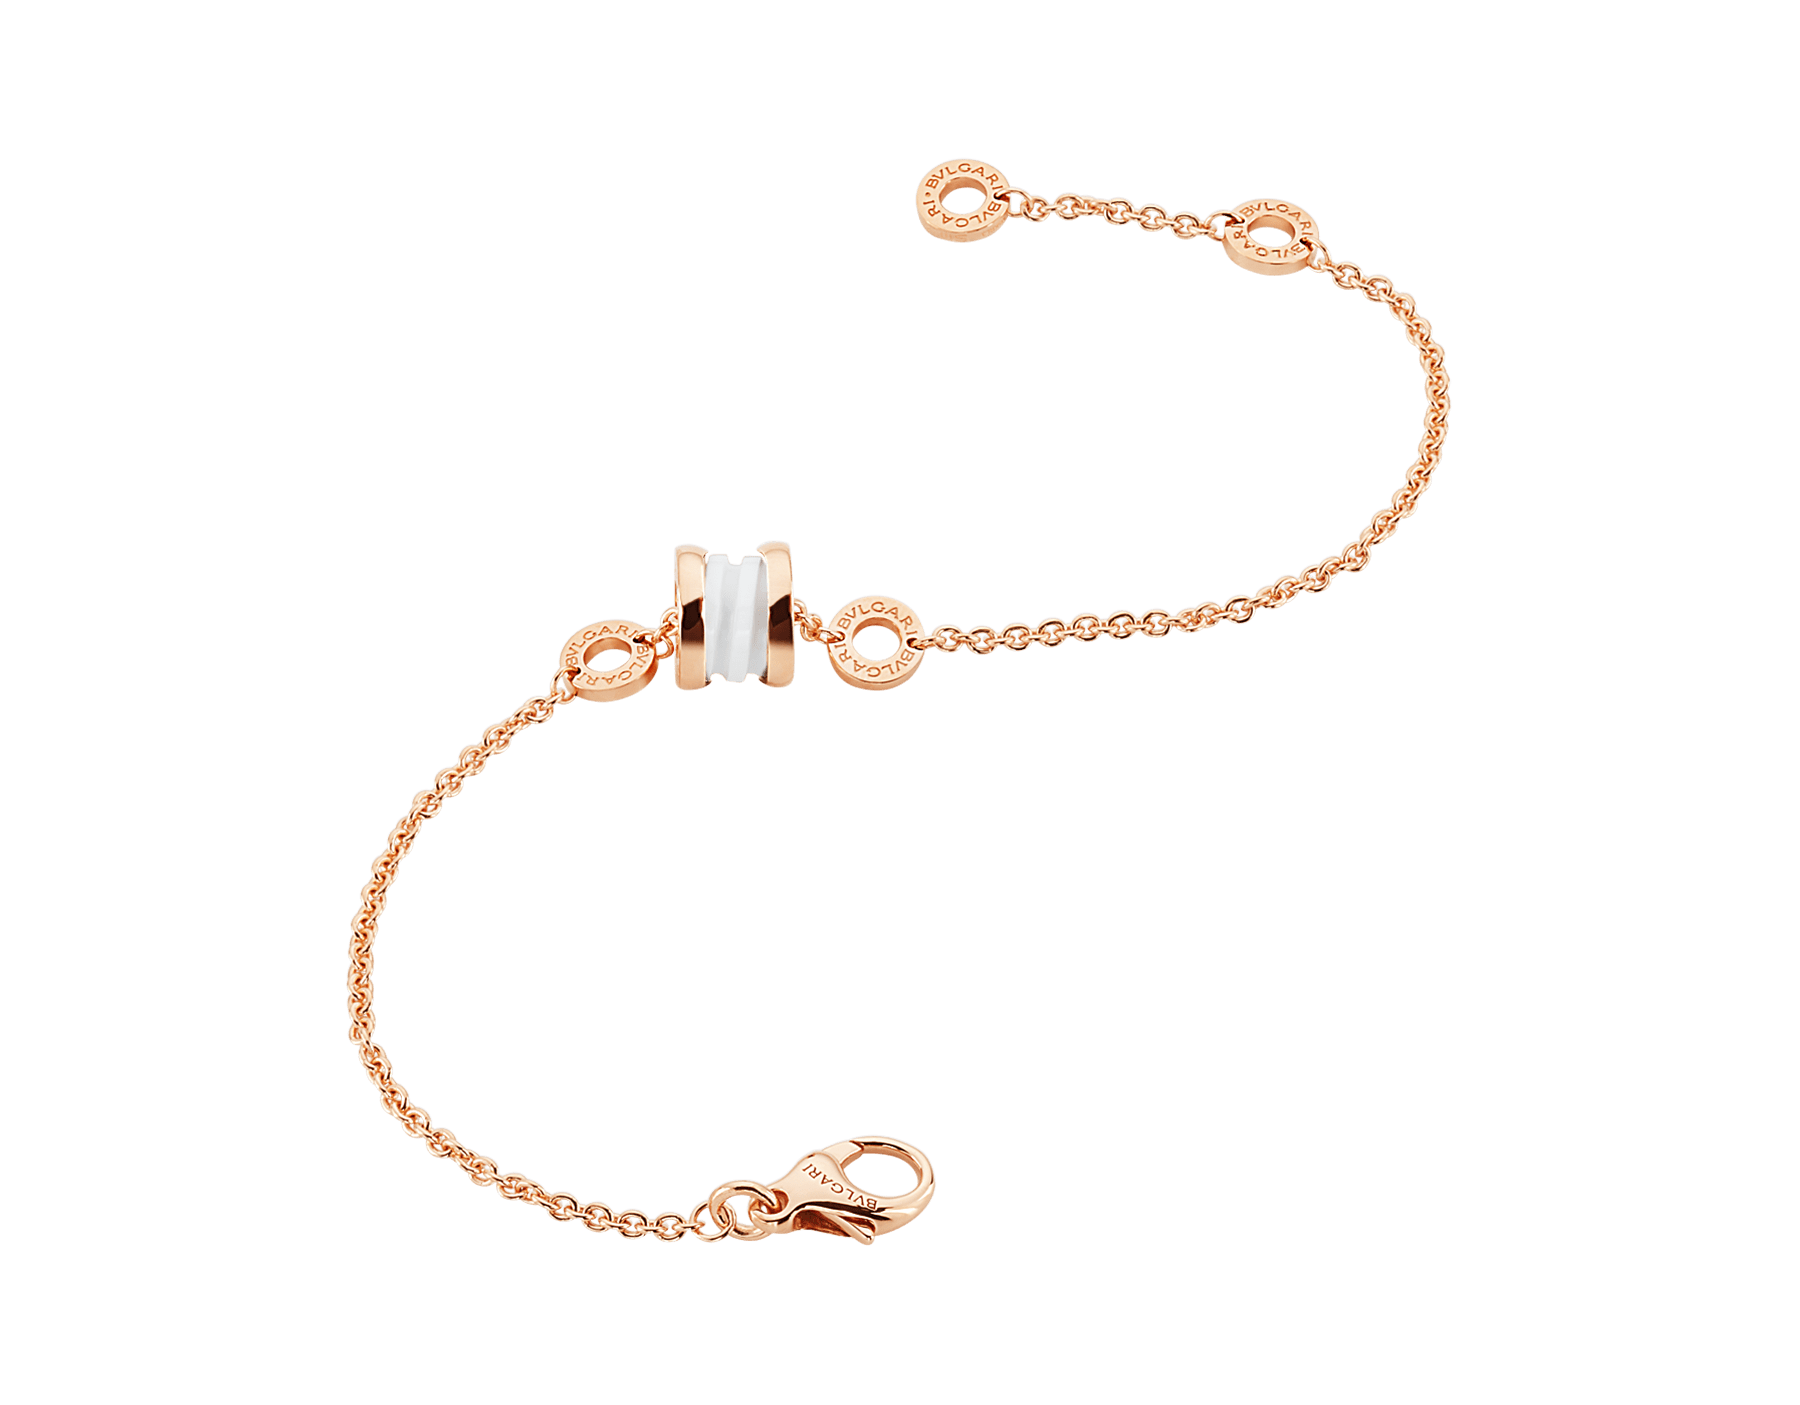 B.zero1 soft bracelet in 18 kt rose gold with 18 kt rose gold and white ceramic pendant. BR858158 image 2